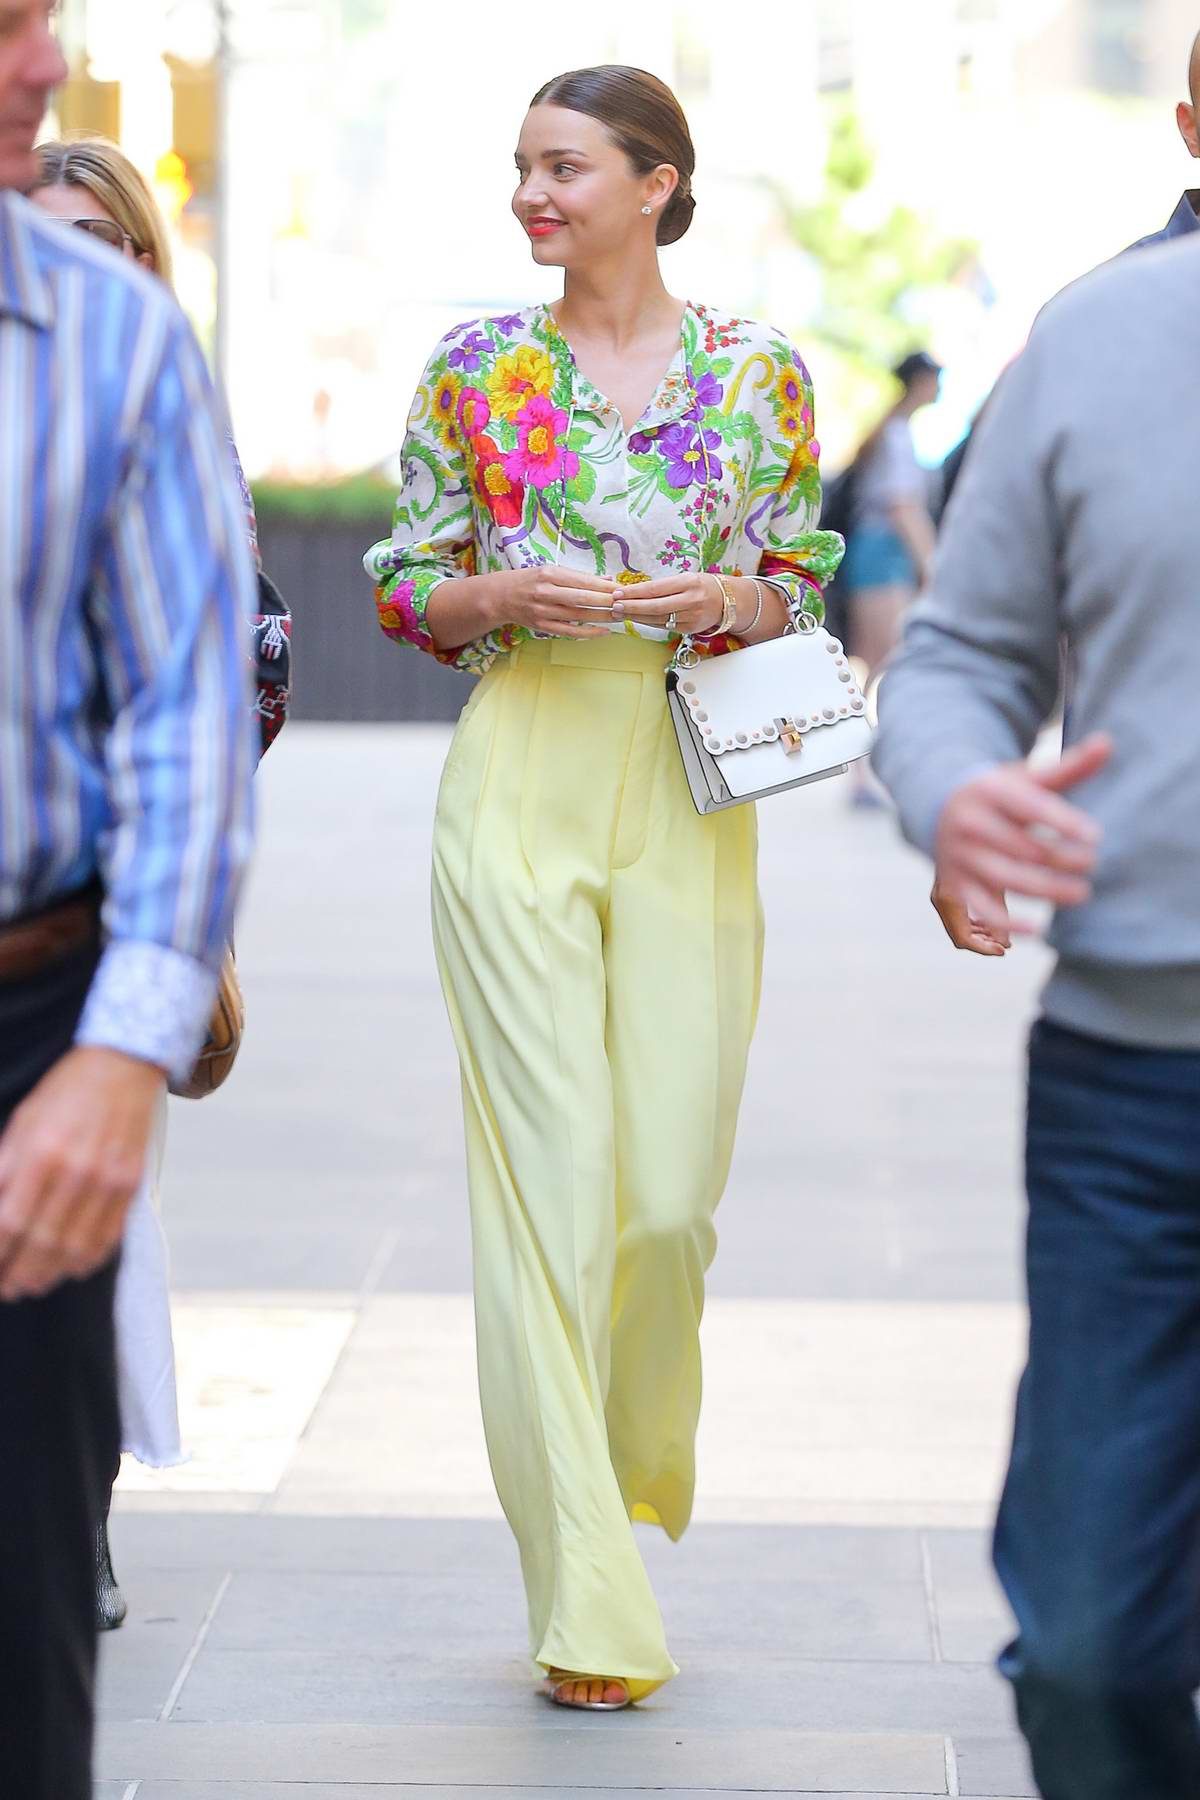 Miranda Kerr spotted leaving the Today show in New York City